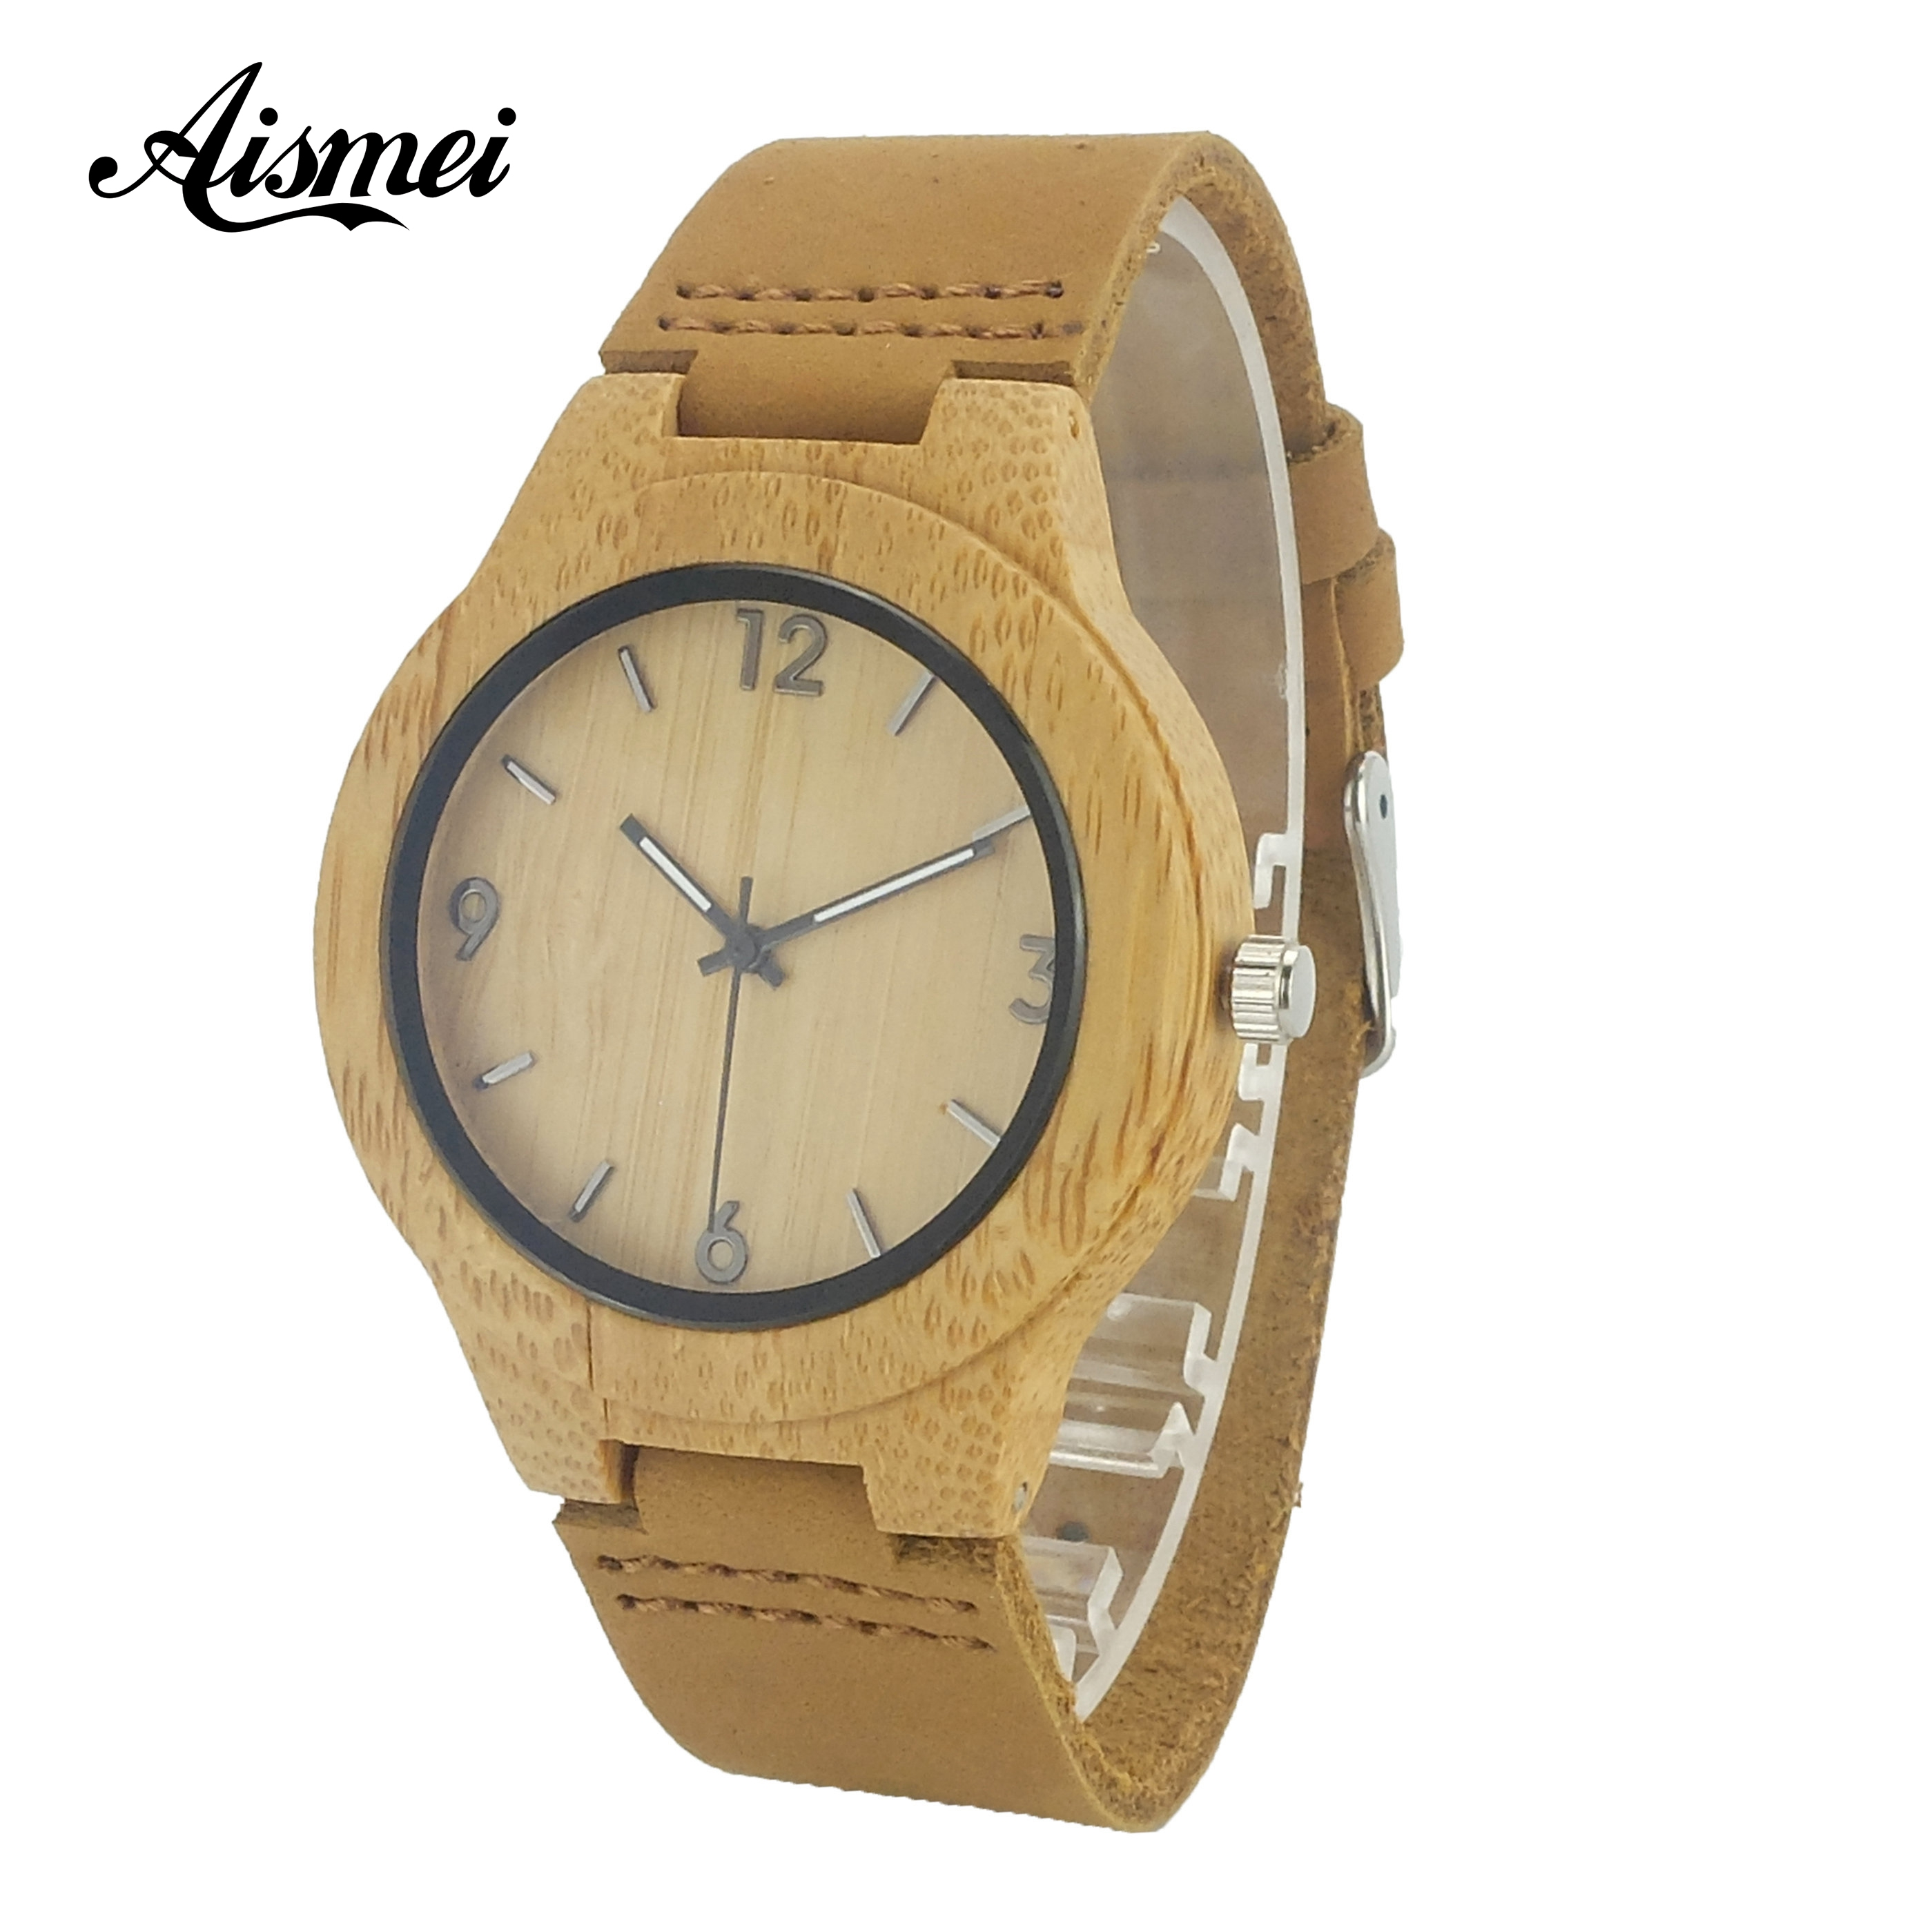 Fashion Women Wooden Quartz Watches with Genuine Leather Band Modern Nature Bamboo Analog Wrist Watch Relogio feminino fashion nature wood quartz wrist watch genuine leather band bamboo pattern strap men women analog green light grey gift